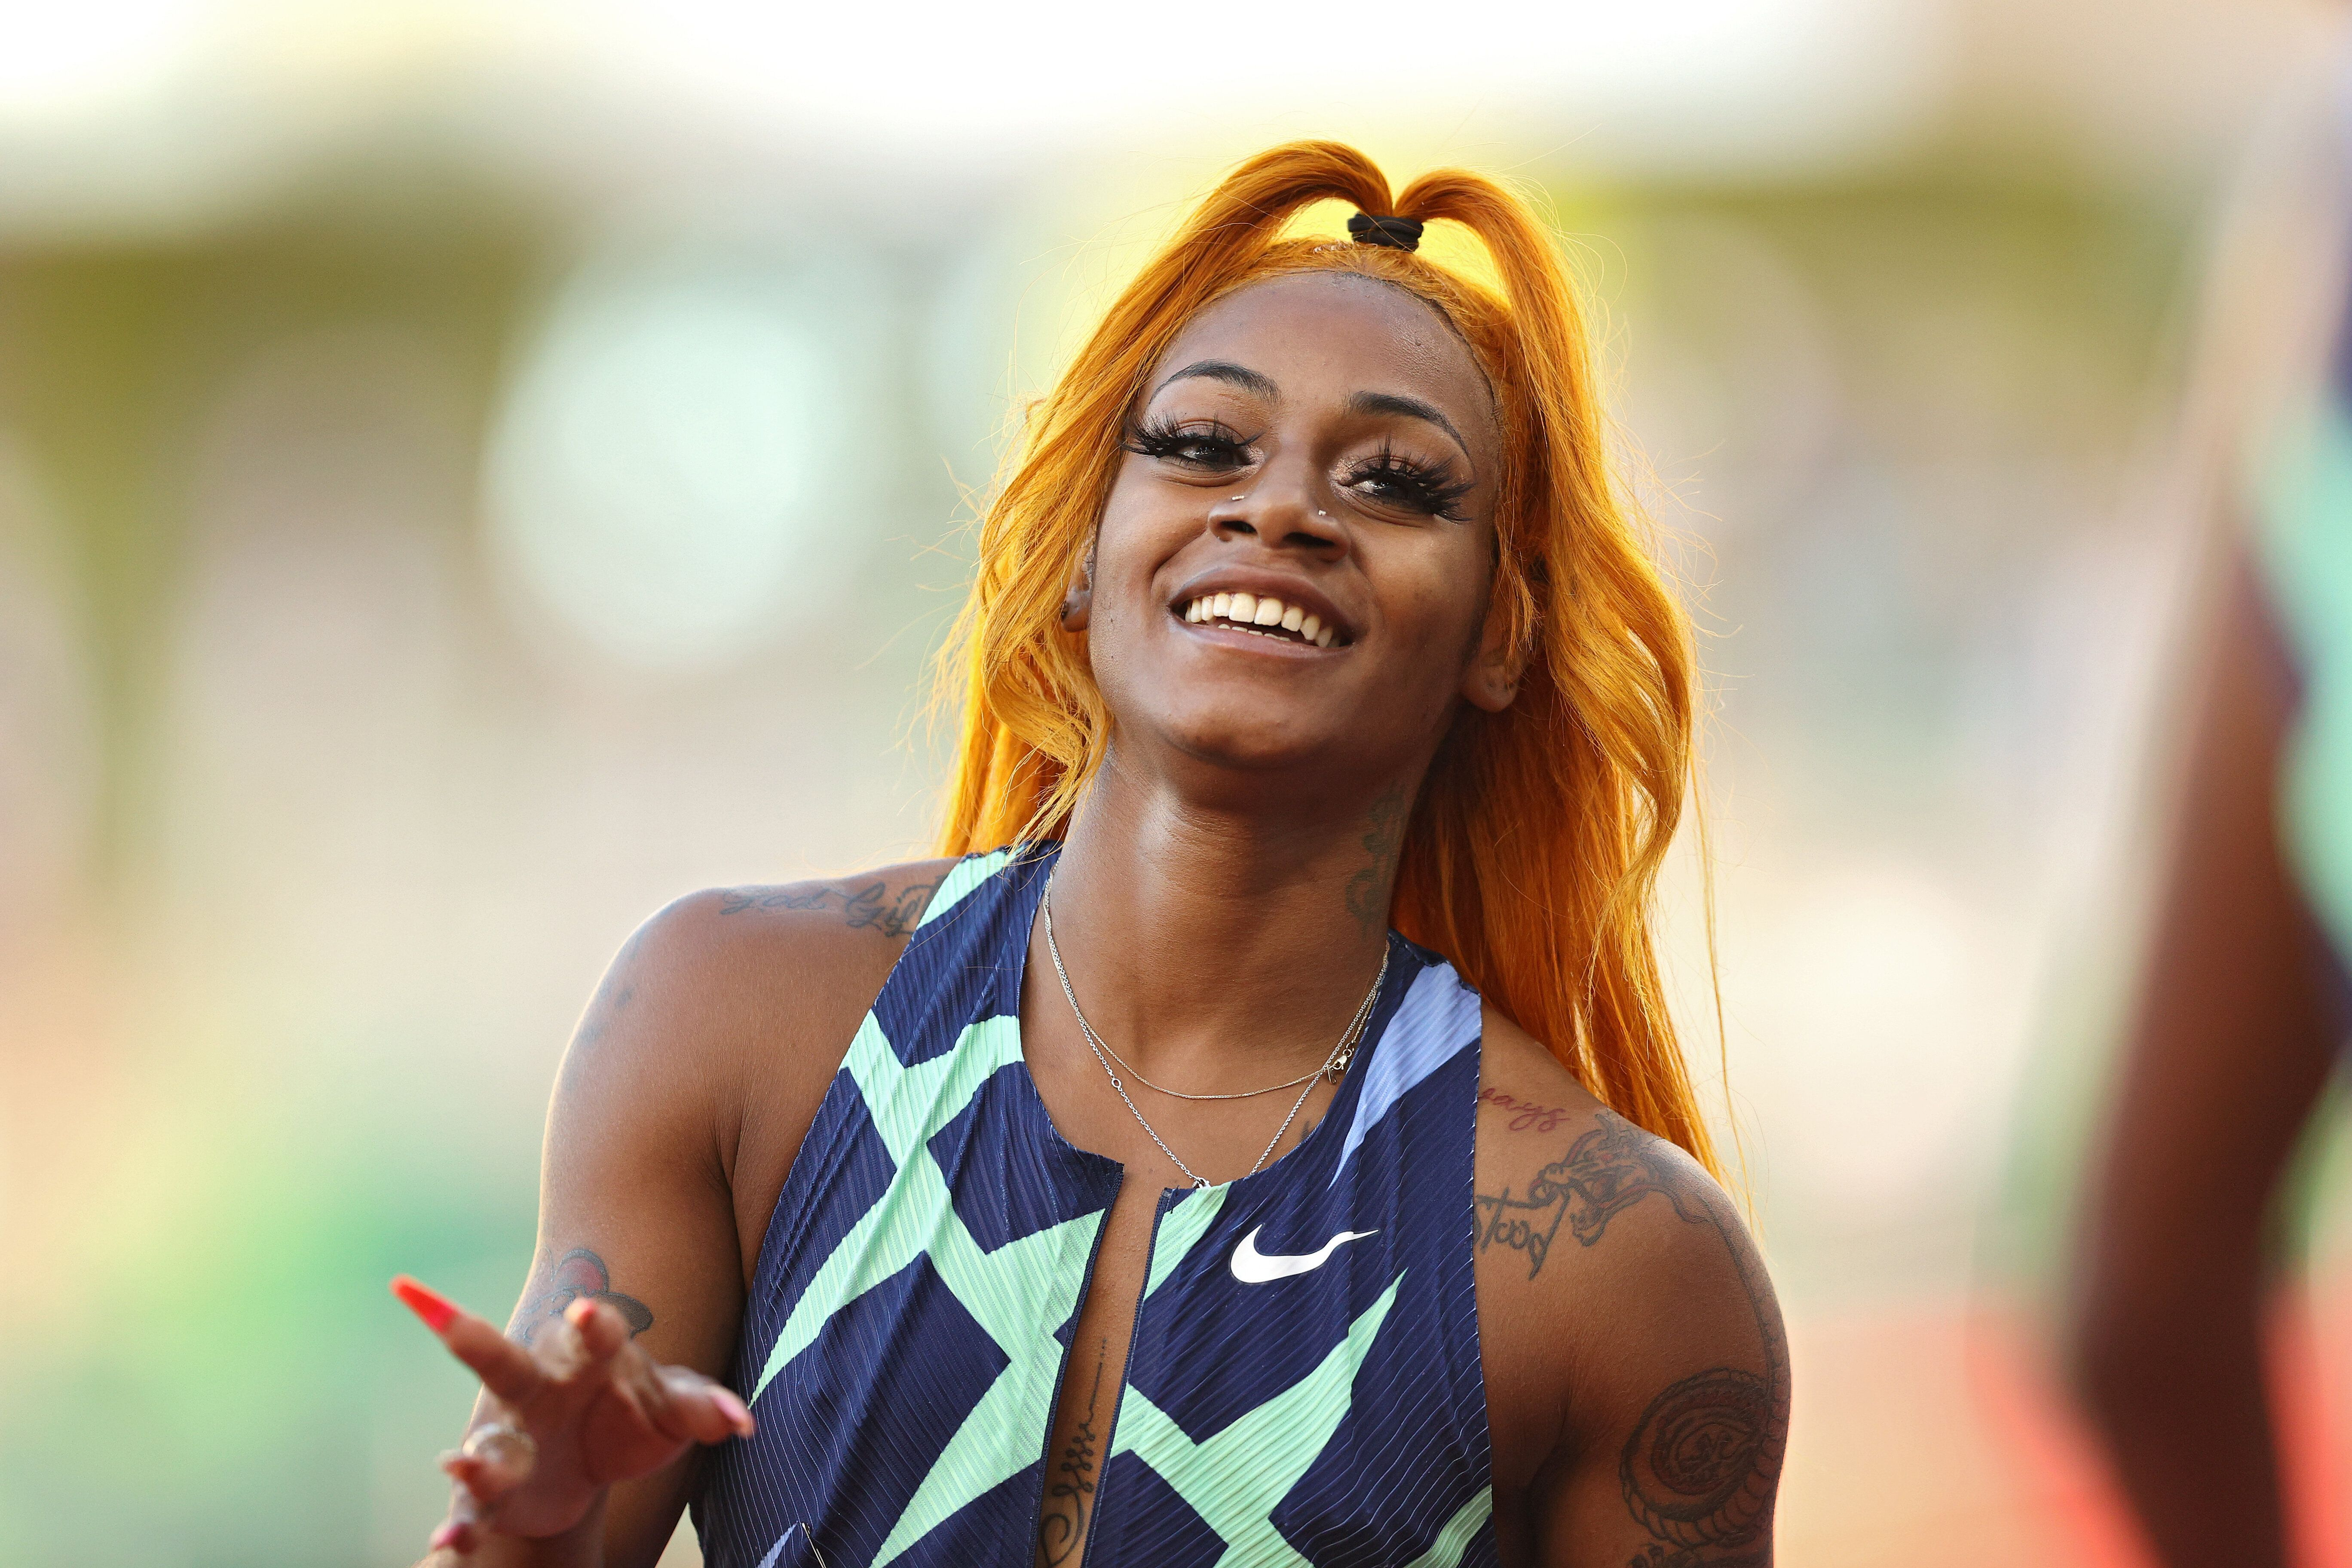 Sha'Carri Richardson after winning the Women's 100-meter final during the U.S. Olympic trials in Eugene, Oregon, ahead of the